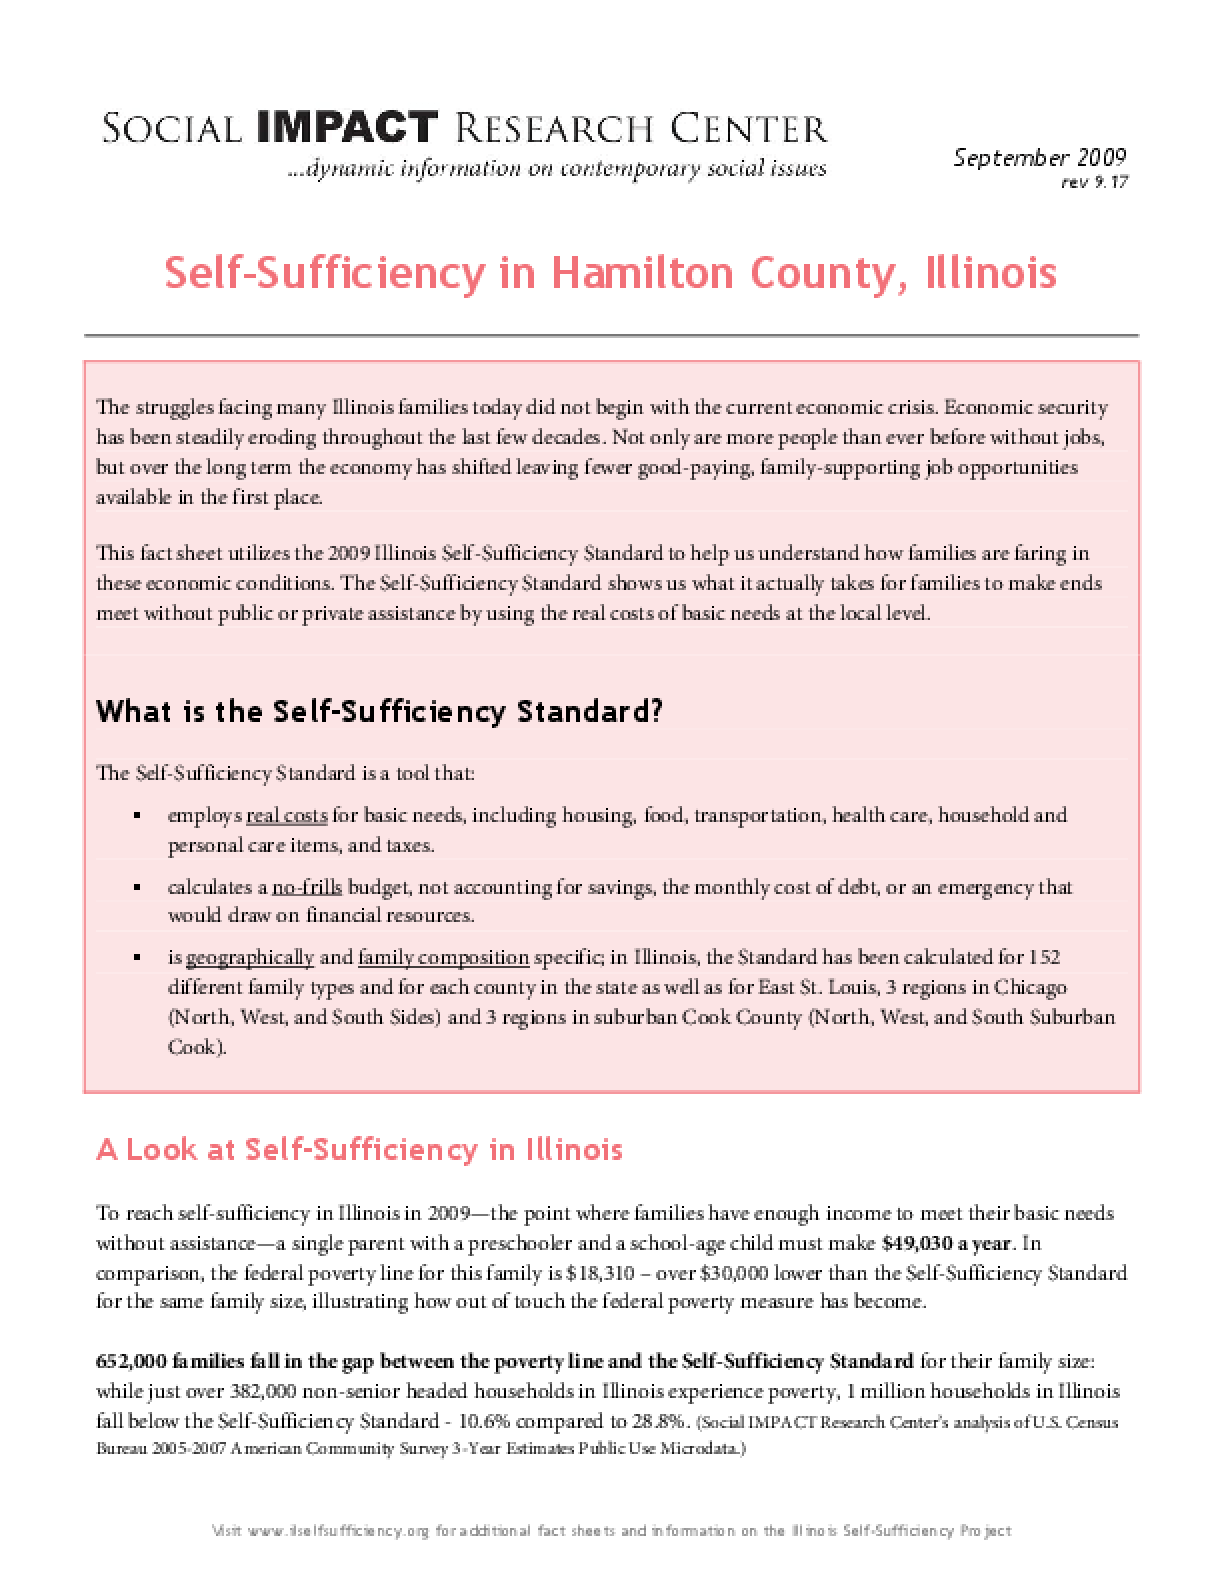 Self-Sufficiency in Hamilton County, Illinois